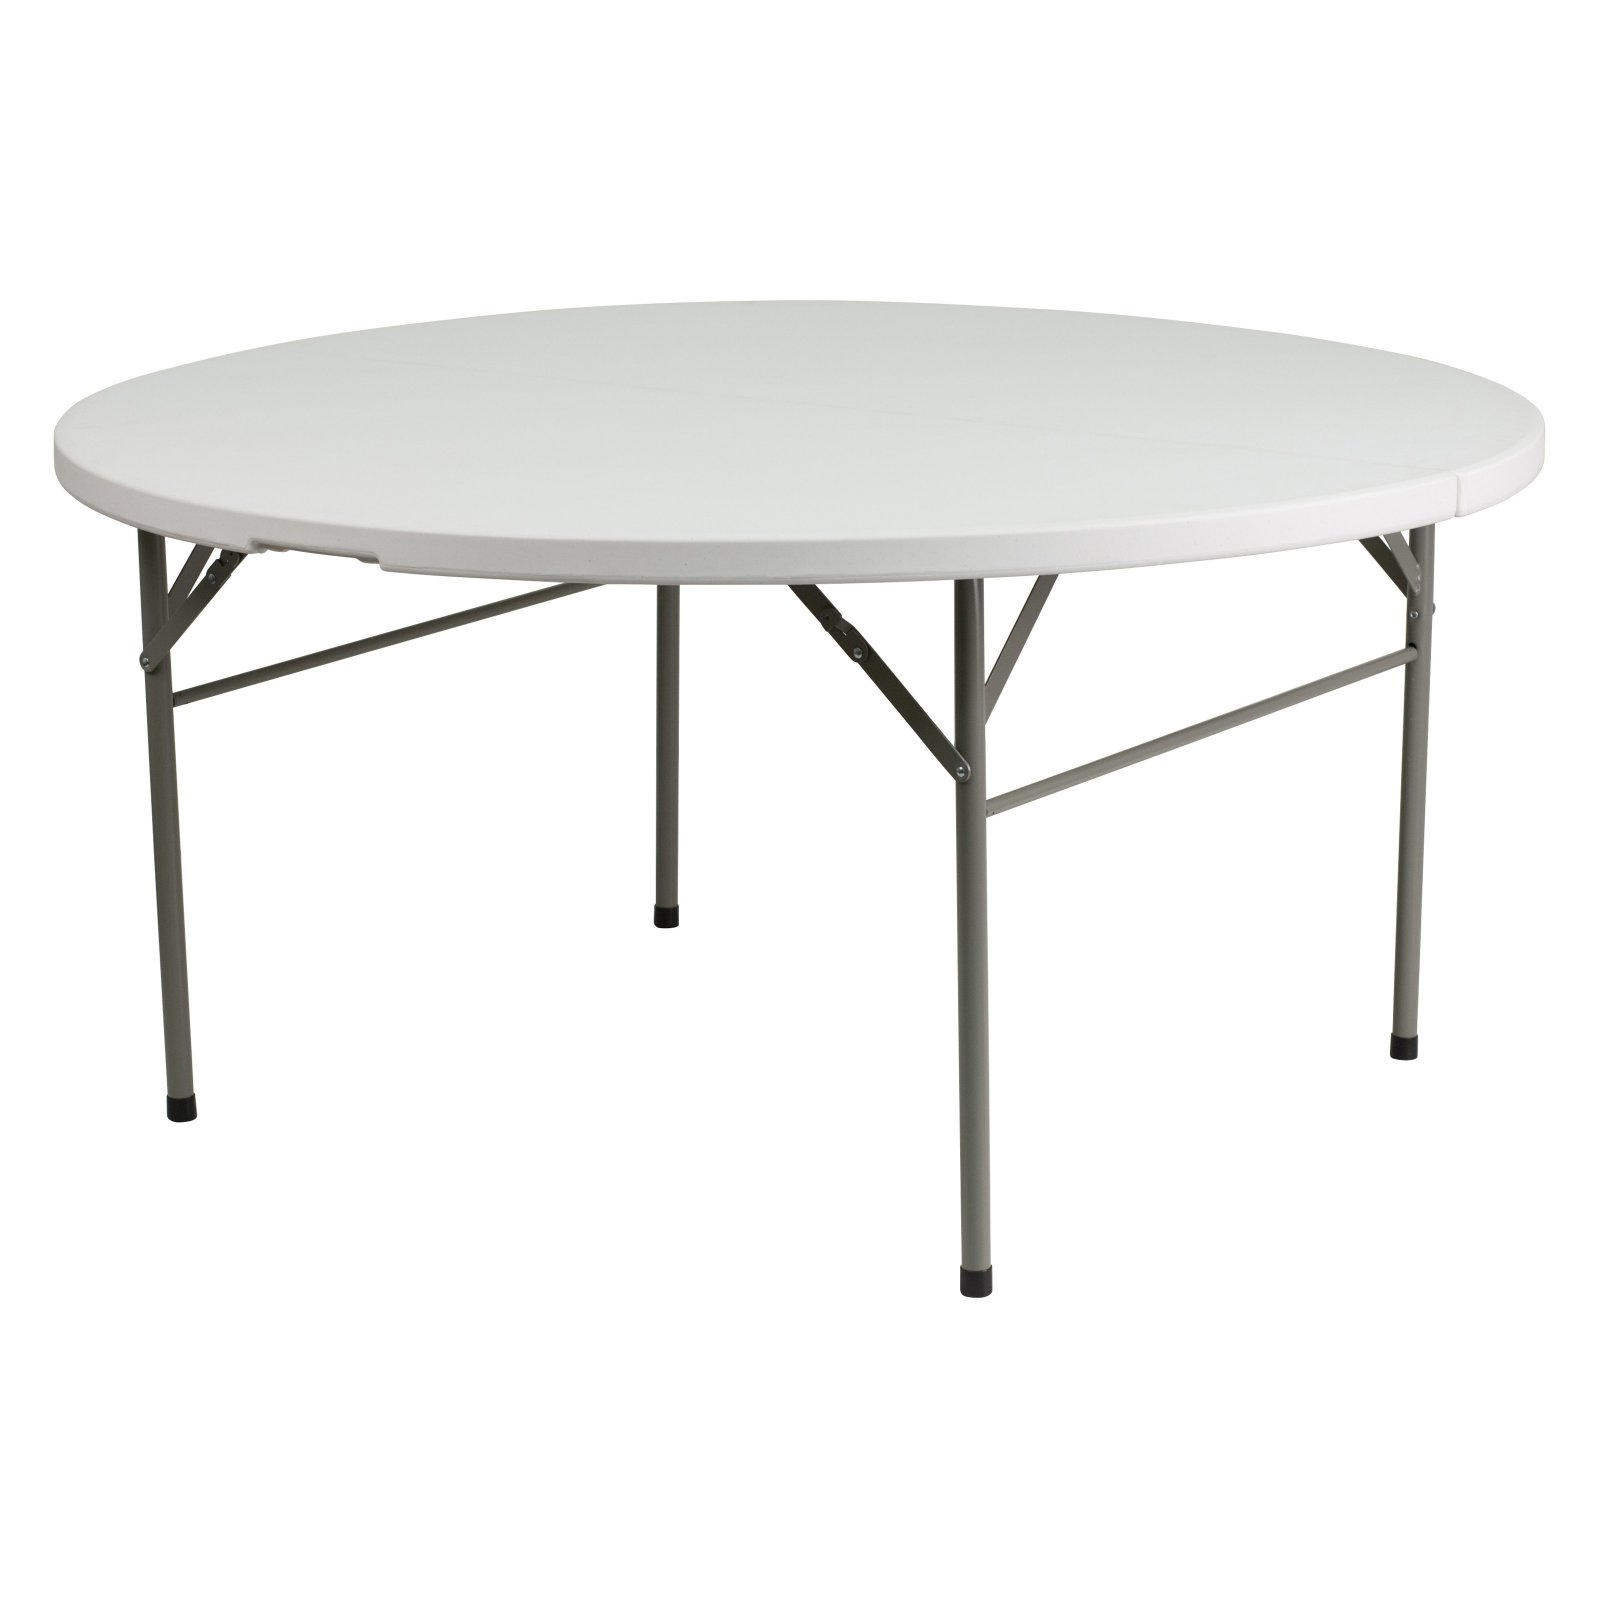 Flash Furniture 60u0027u0027 Round Bi Fold Granite White Plastic Folding Table